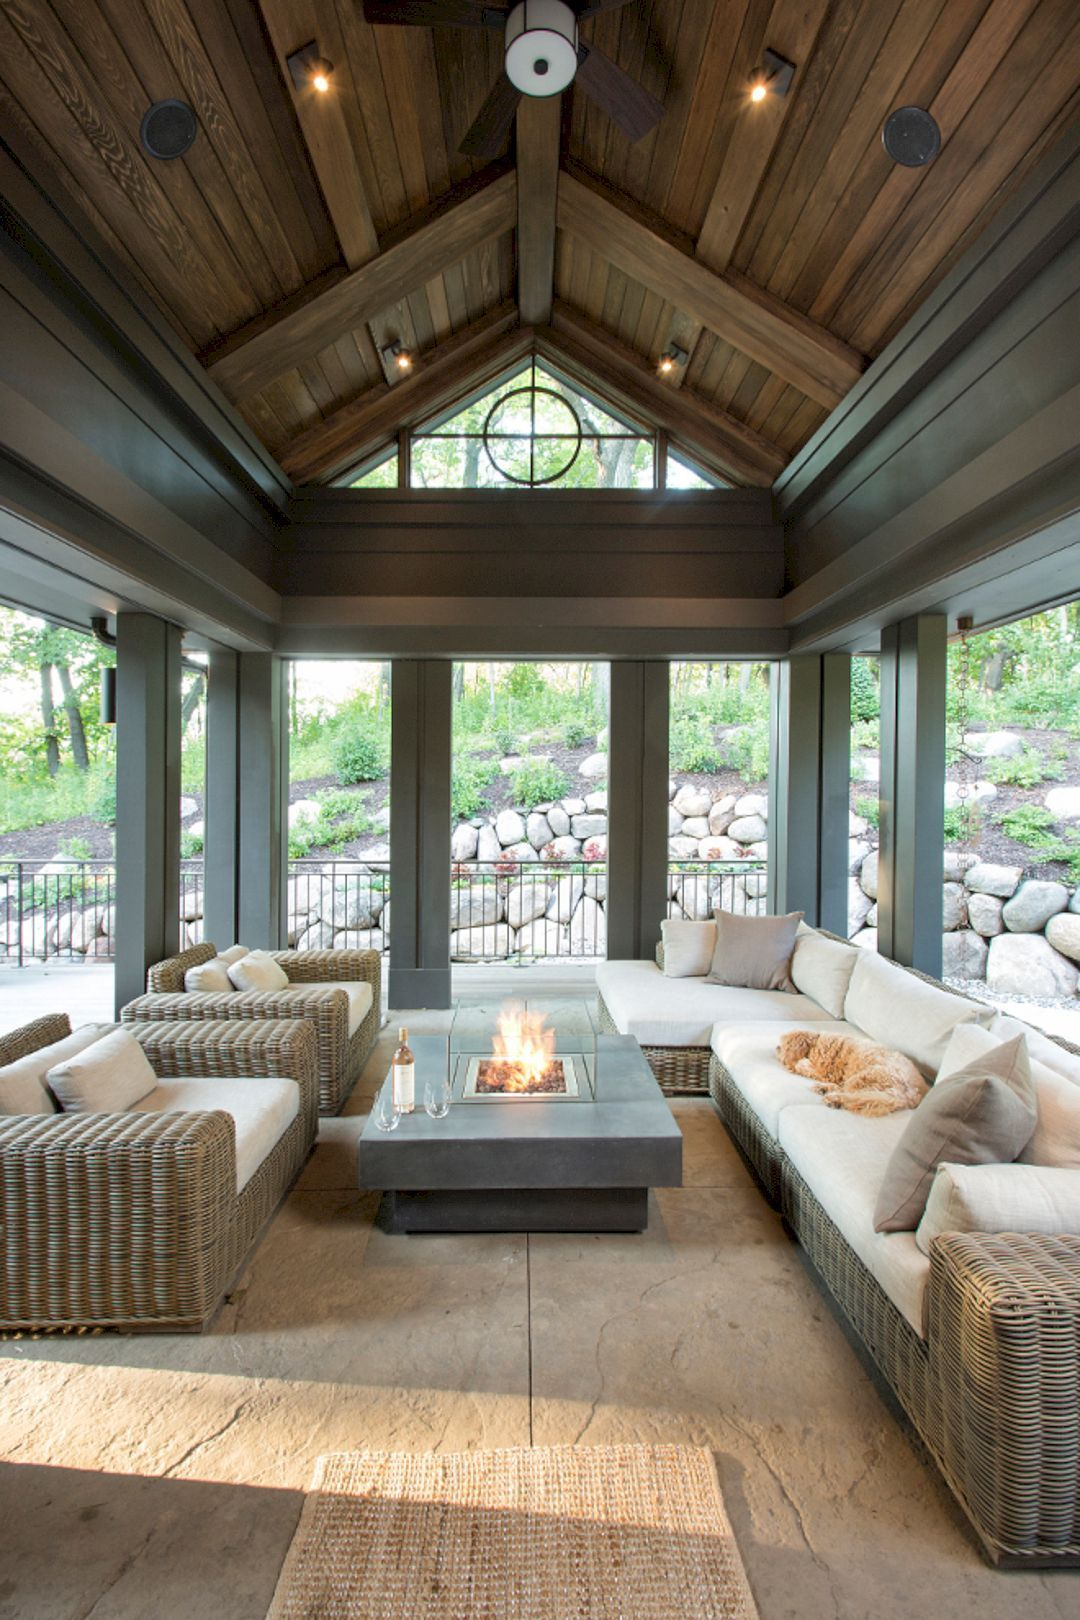 8 Ways To Have More Appealing Screened Porch Deck Modern Organic Interior Porch Design Ideas Porch Design